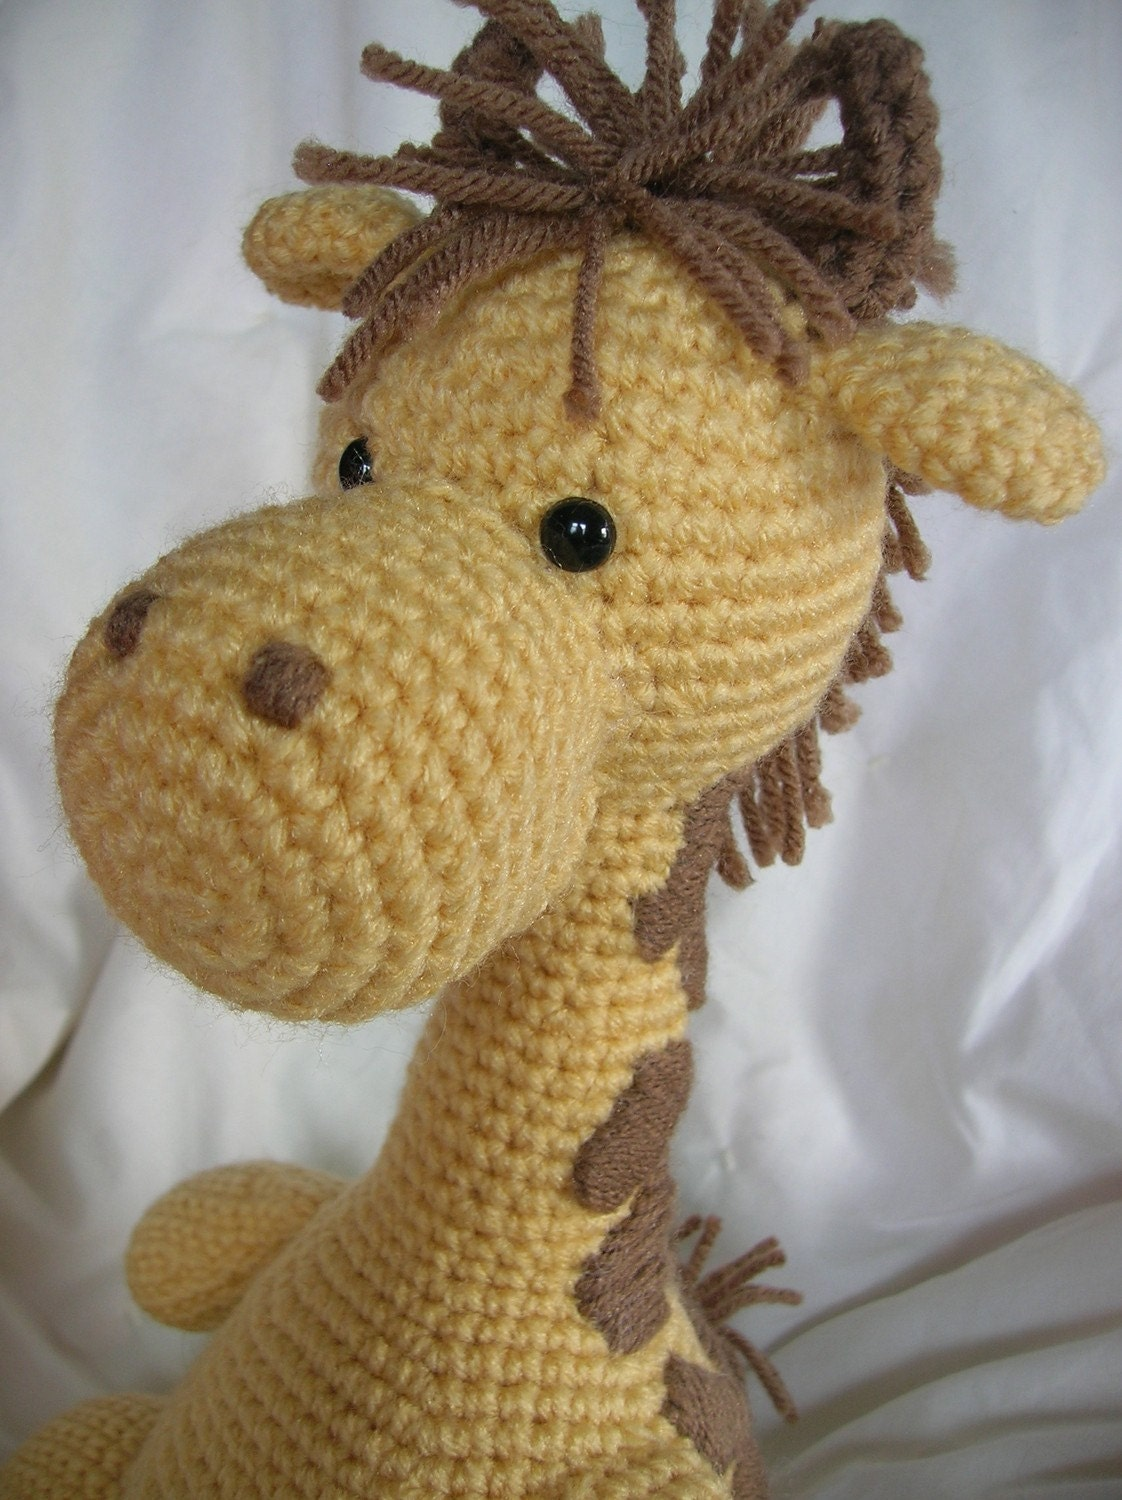 Free Giraffe Crochet Afghan Pattern : Crochet Giraffe Related Keywords & Suggestions - Crochet ...